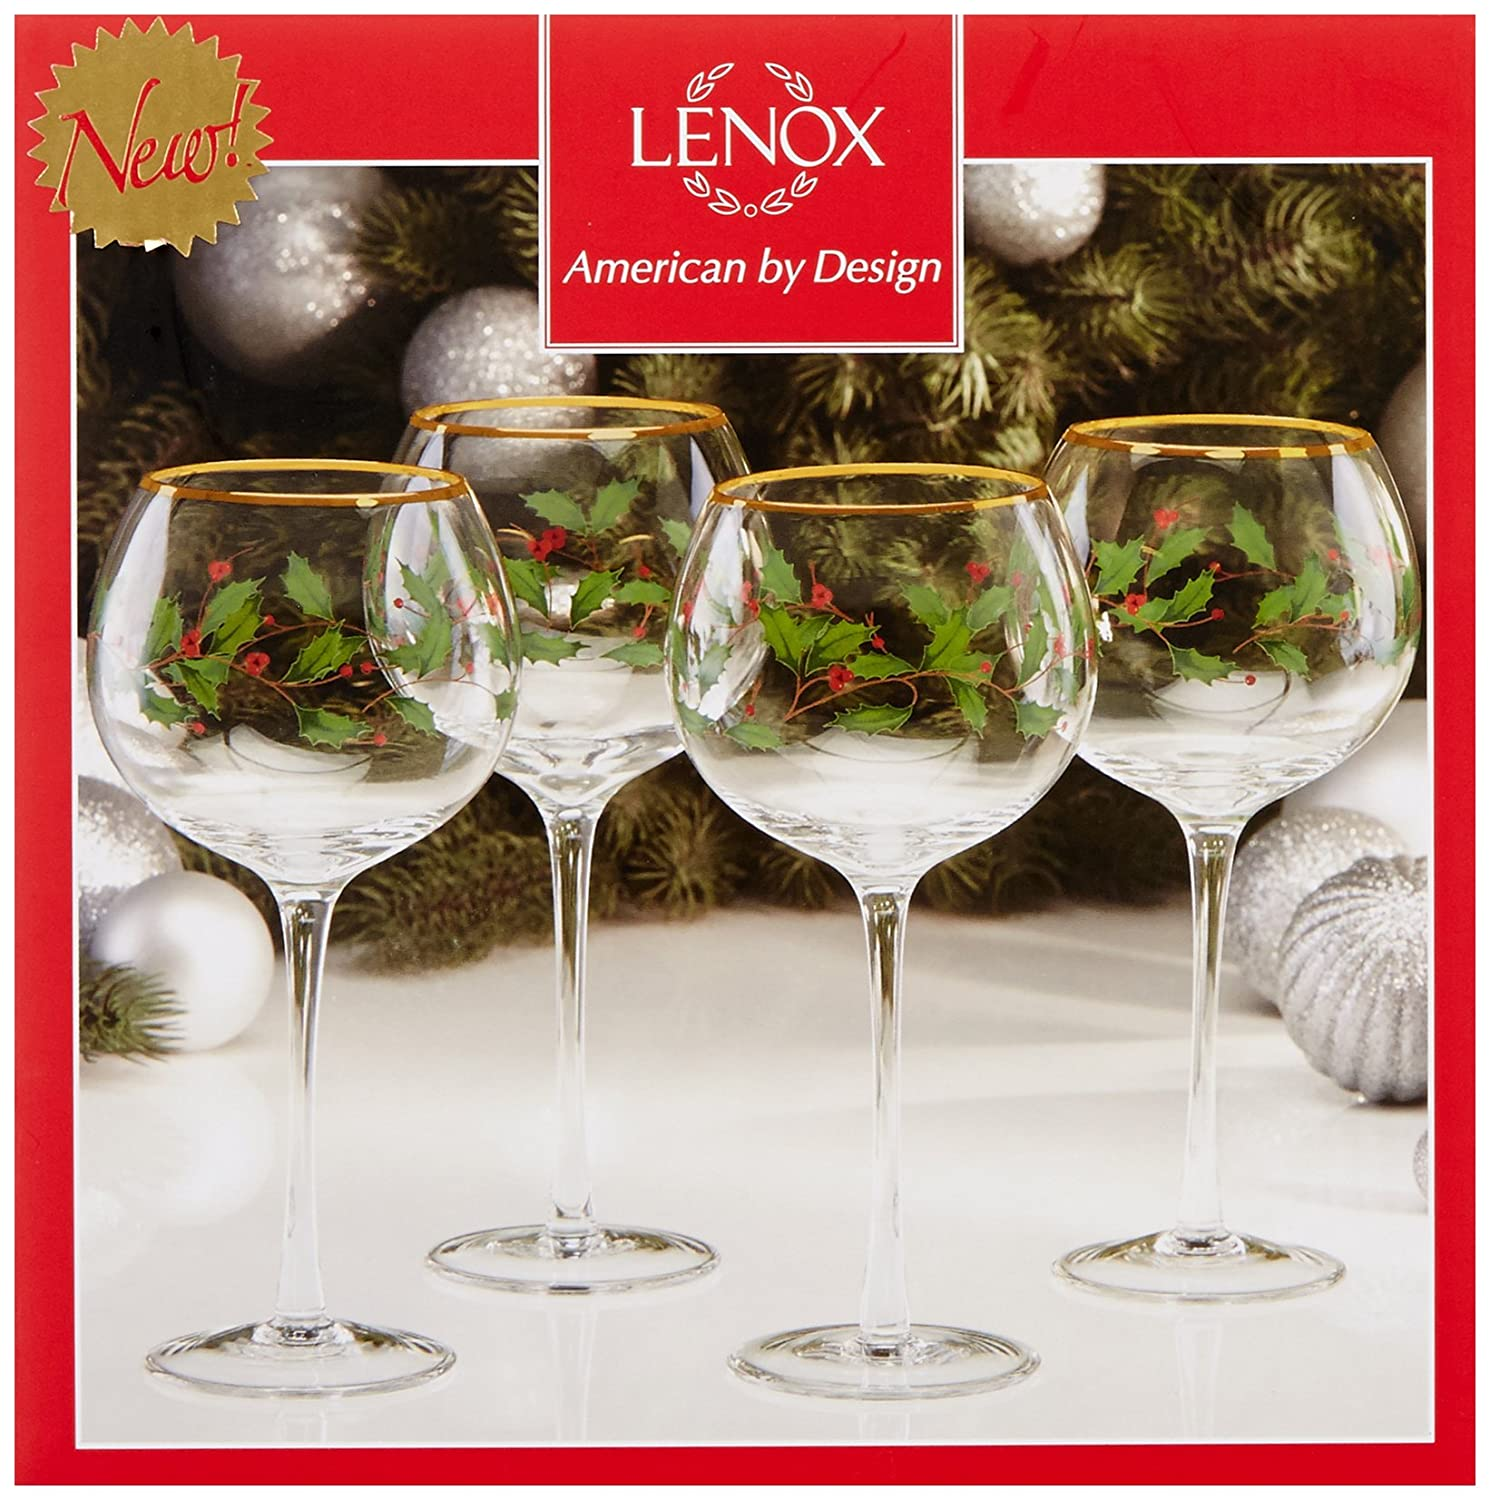 Amazon.com: Lenox Holiday Balloon Glasses, Set of 4: Kitchen & Dining